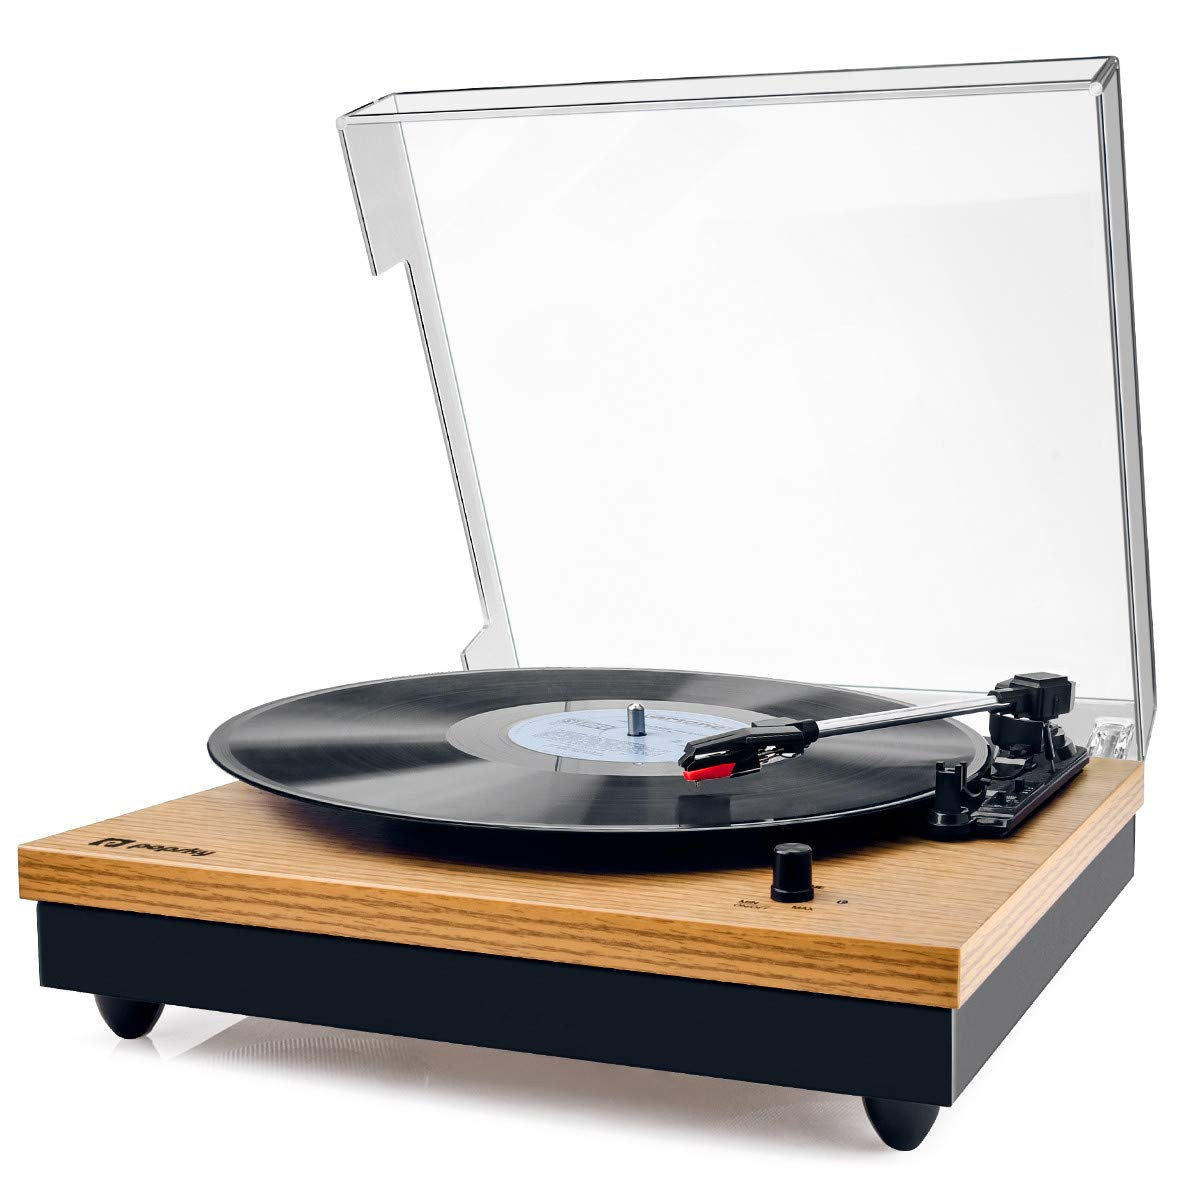 Record Player, Popsky Vintage Turntable 3-Speed Bluetooth Record Player with Speaker, Portable LP Vinyl Player, RCA Jack, Natural Wood by popsky